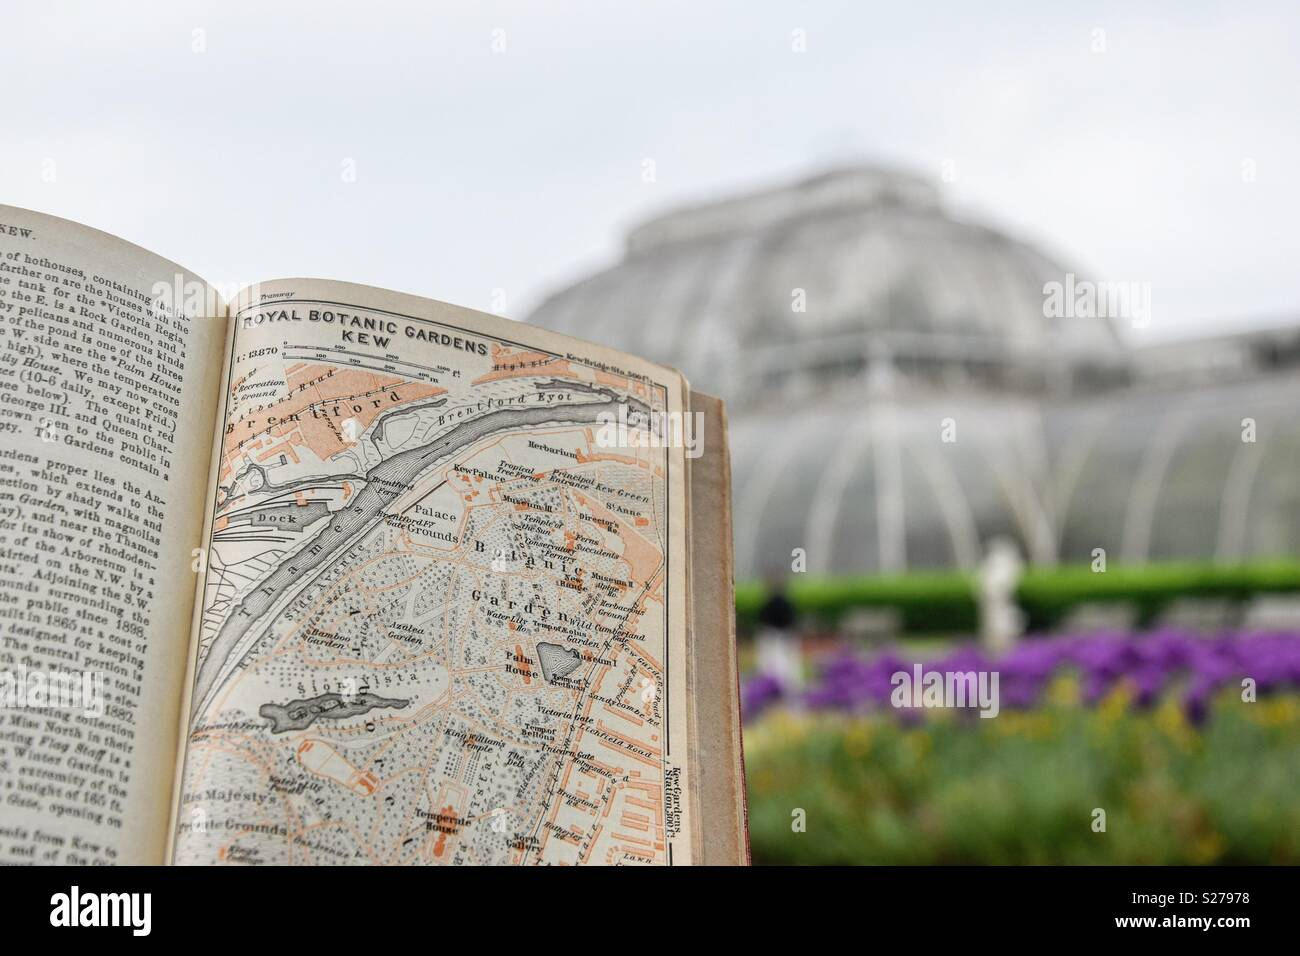 An Antique Map Of Kew Botanical Gardens Against A Backdrop Of The